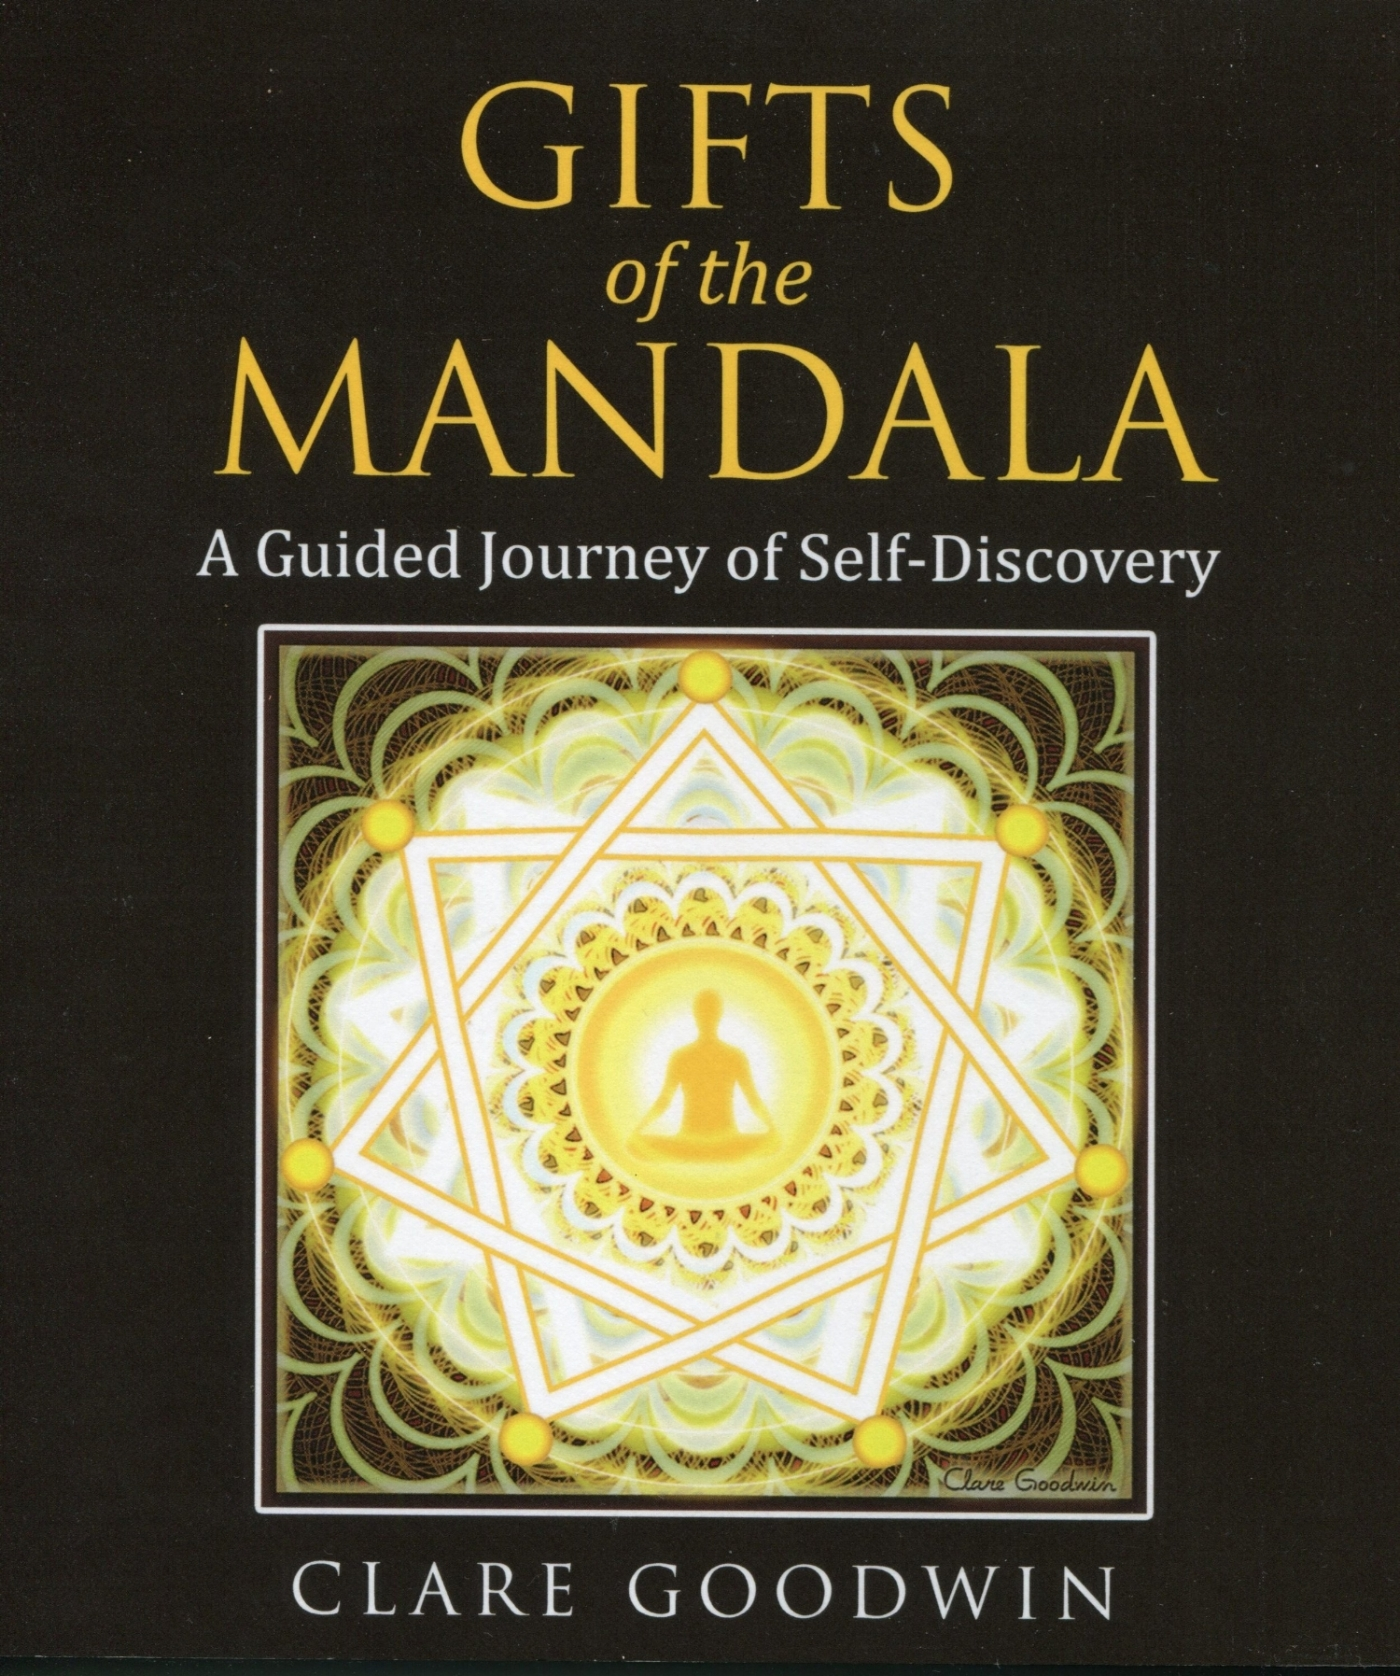 Gifts of the mandala, by clare goodwin. developed by naomi rose.